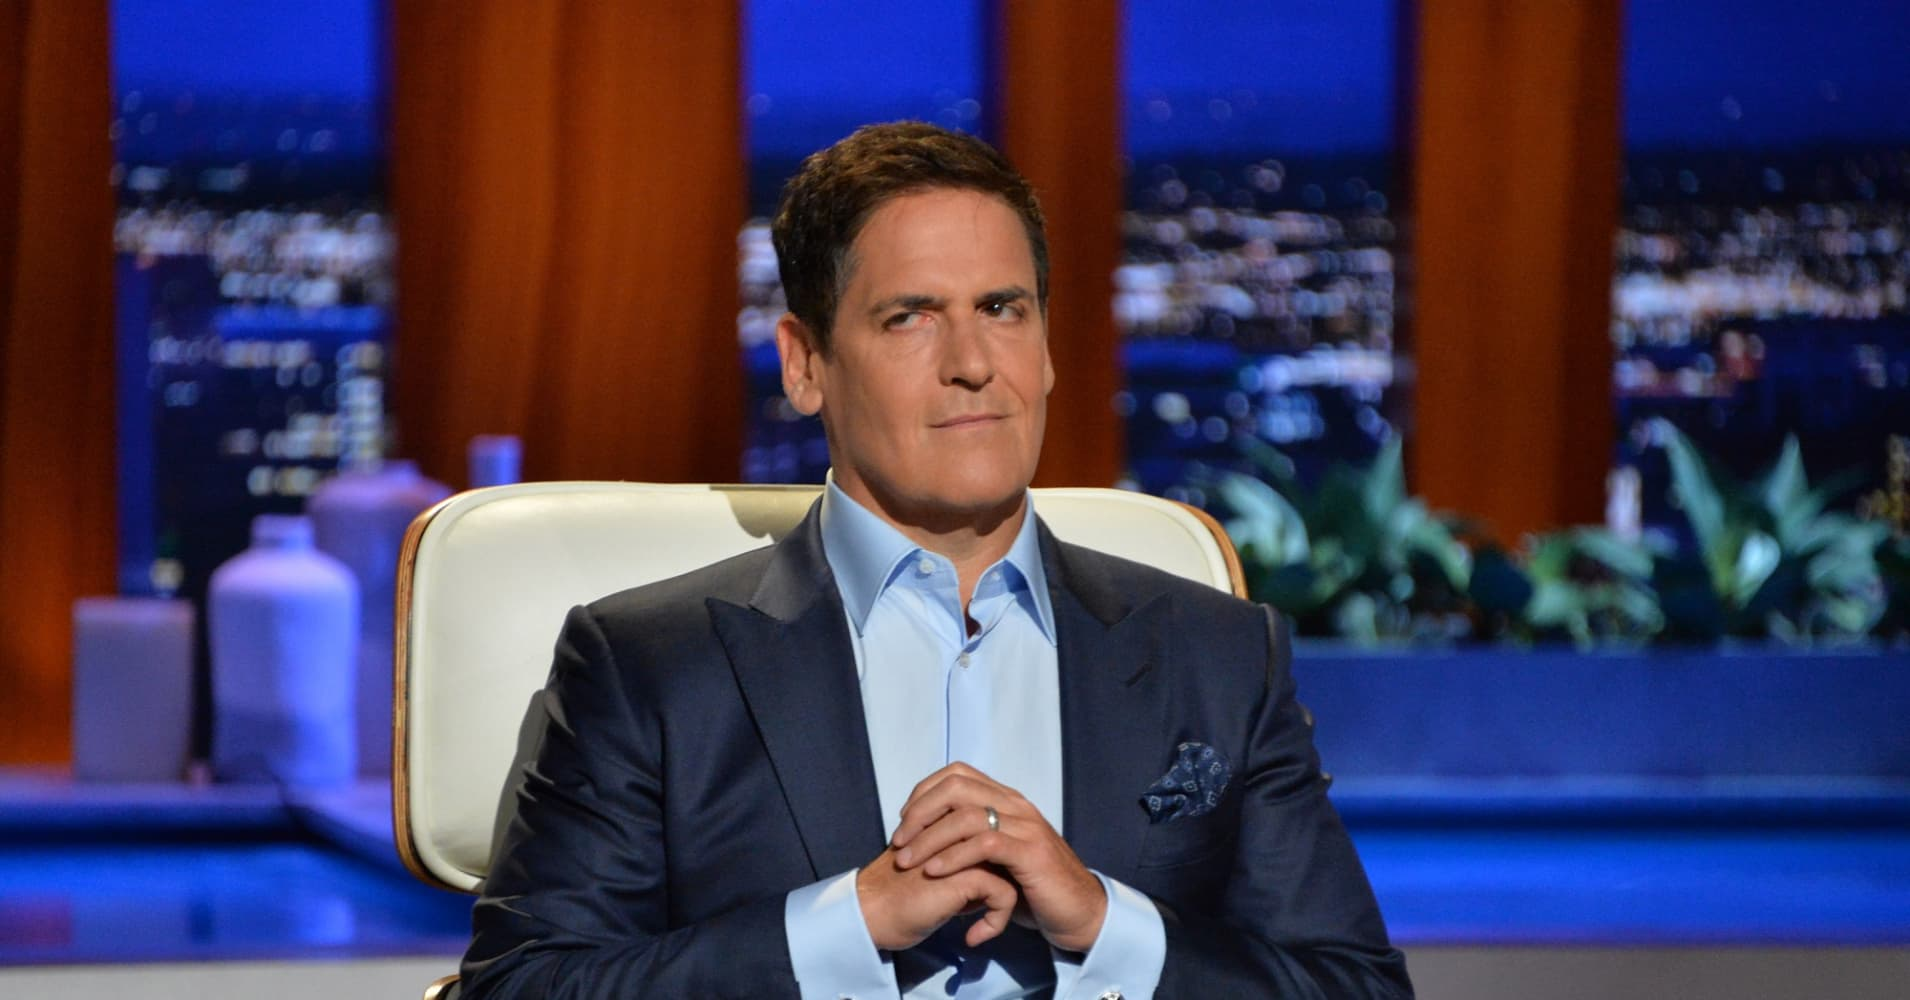 Mark Cuban Invested 200 000 In Dna Simple On Shark Tank